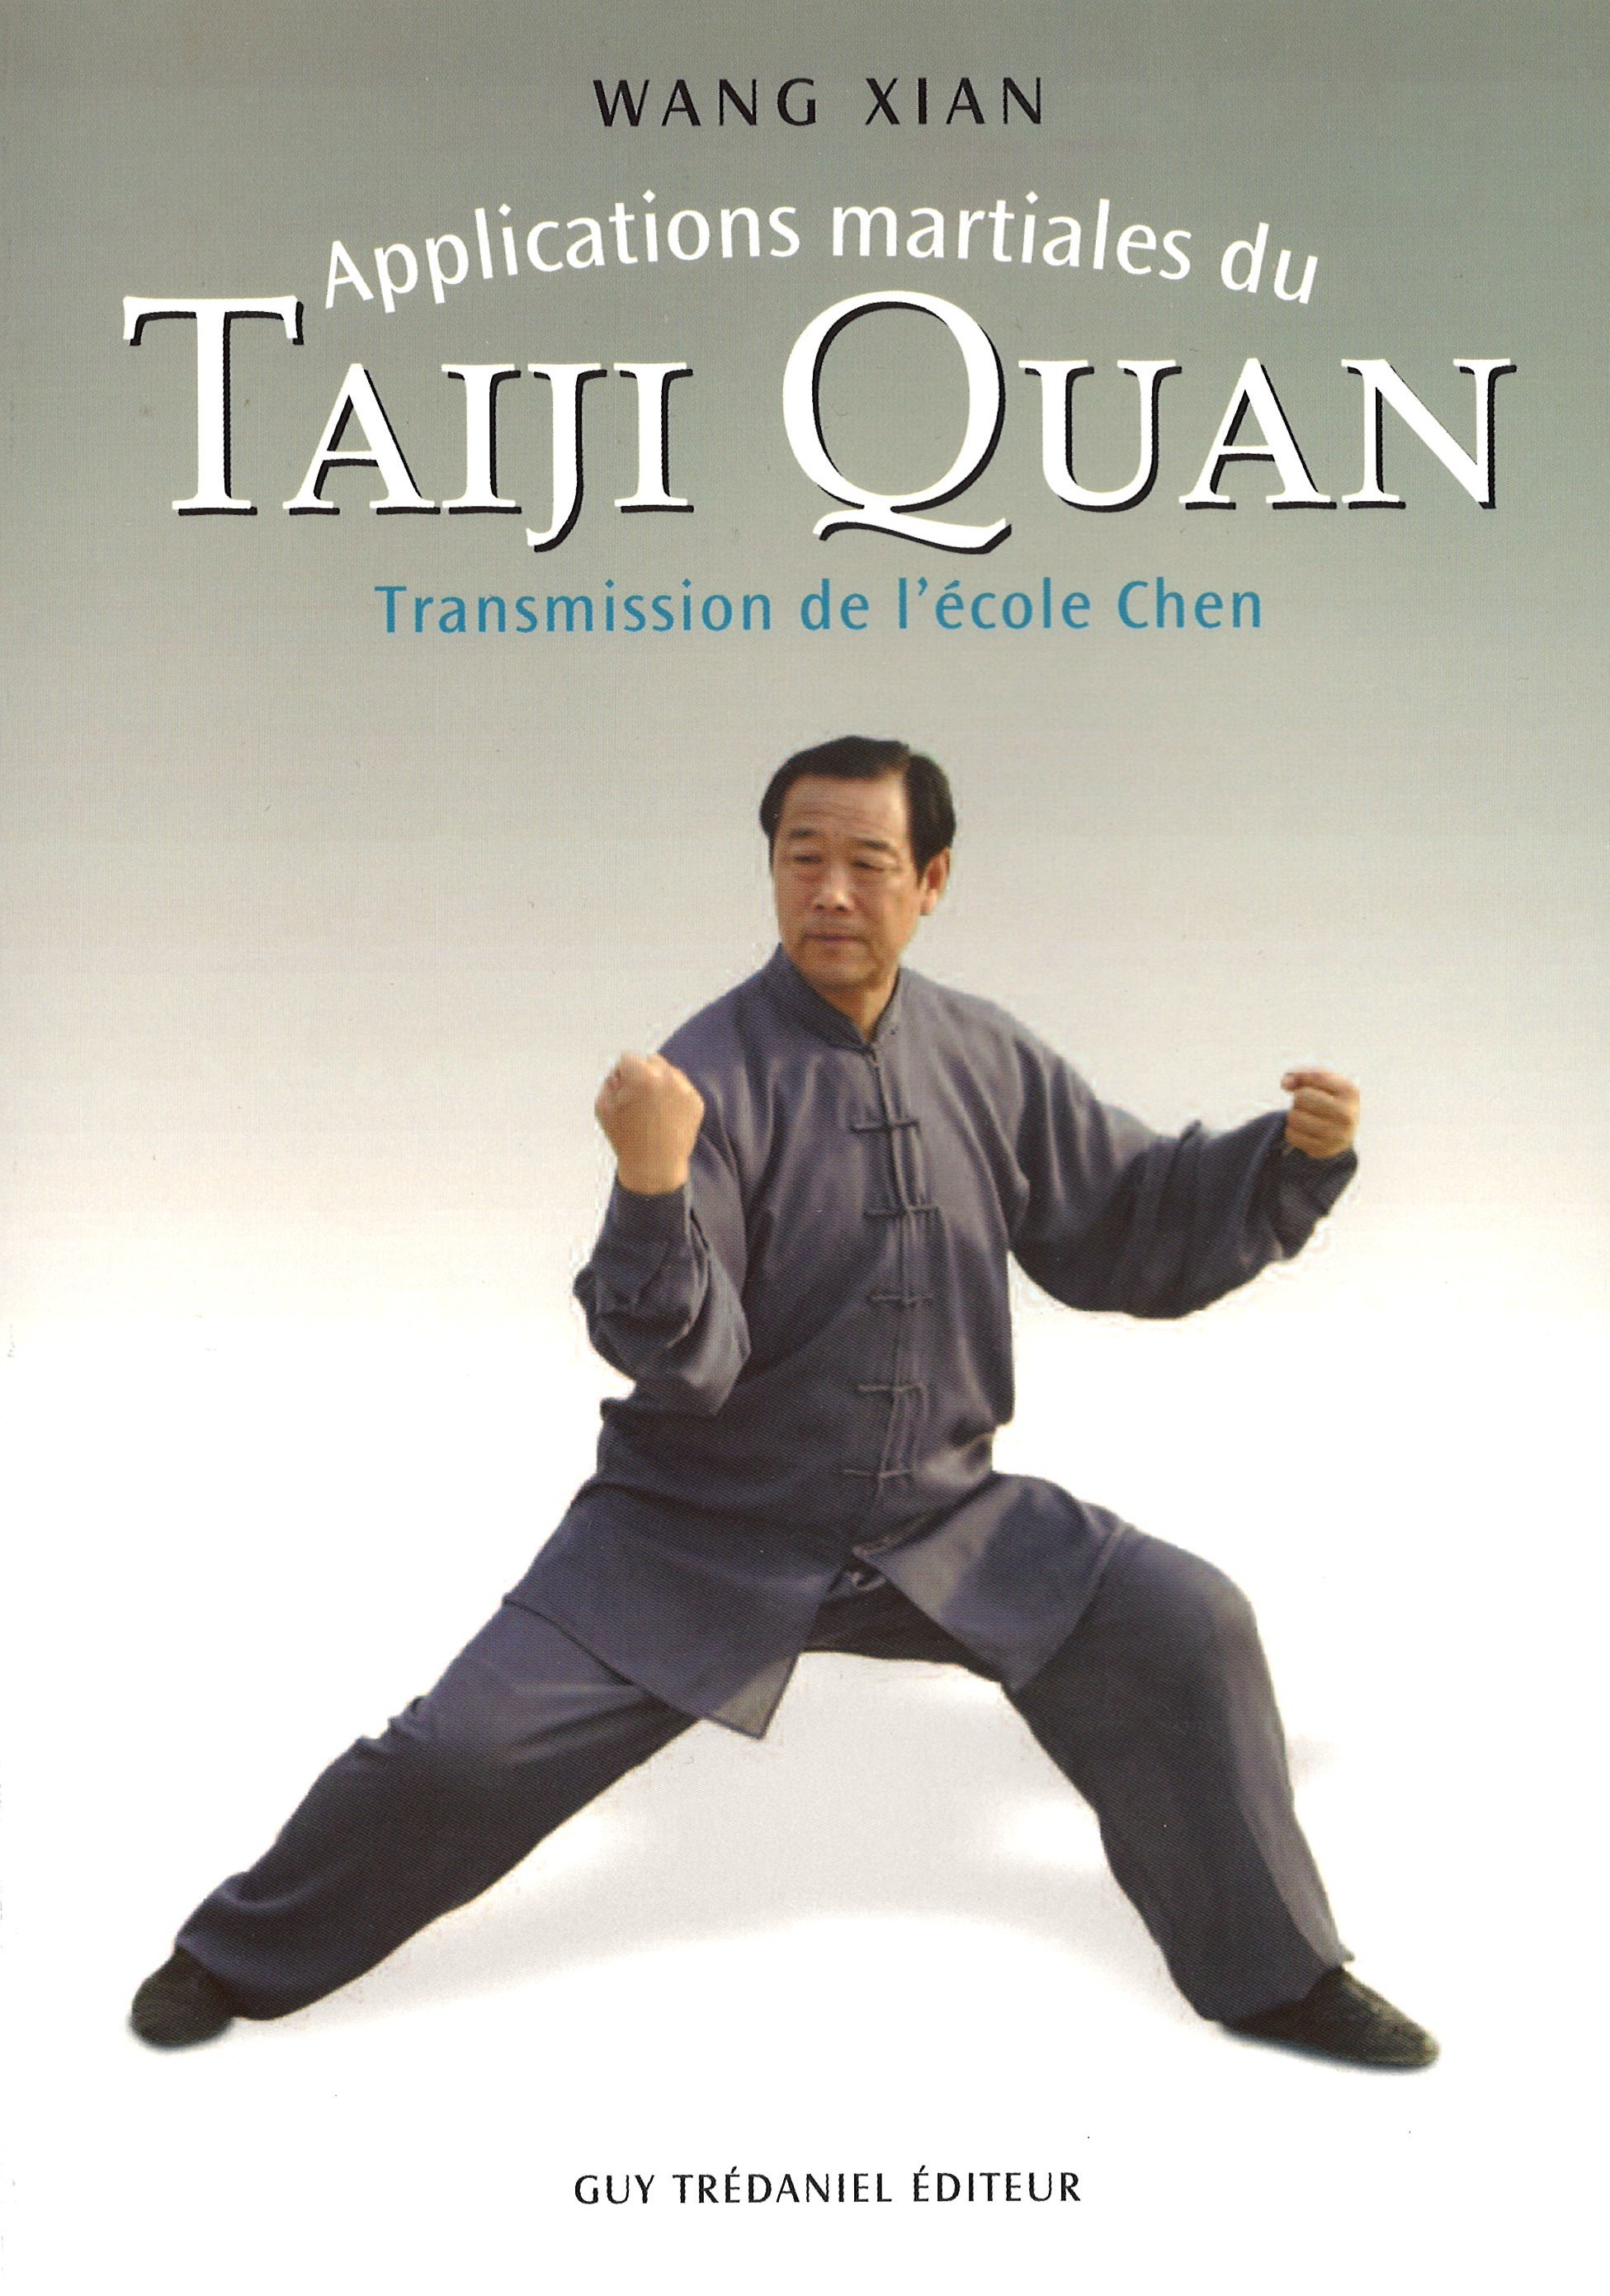 Applications martiales du TAIJIQUAN